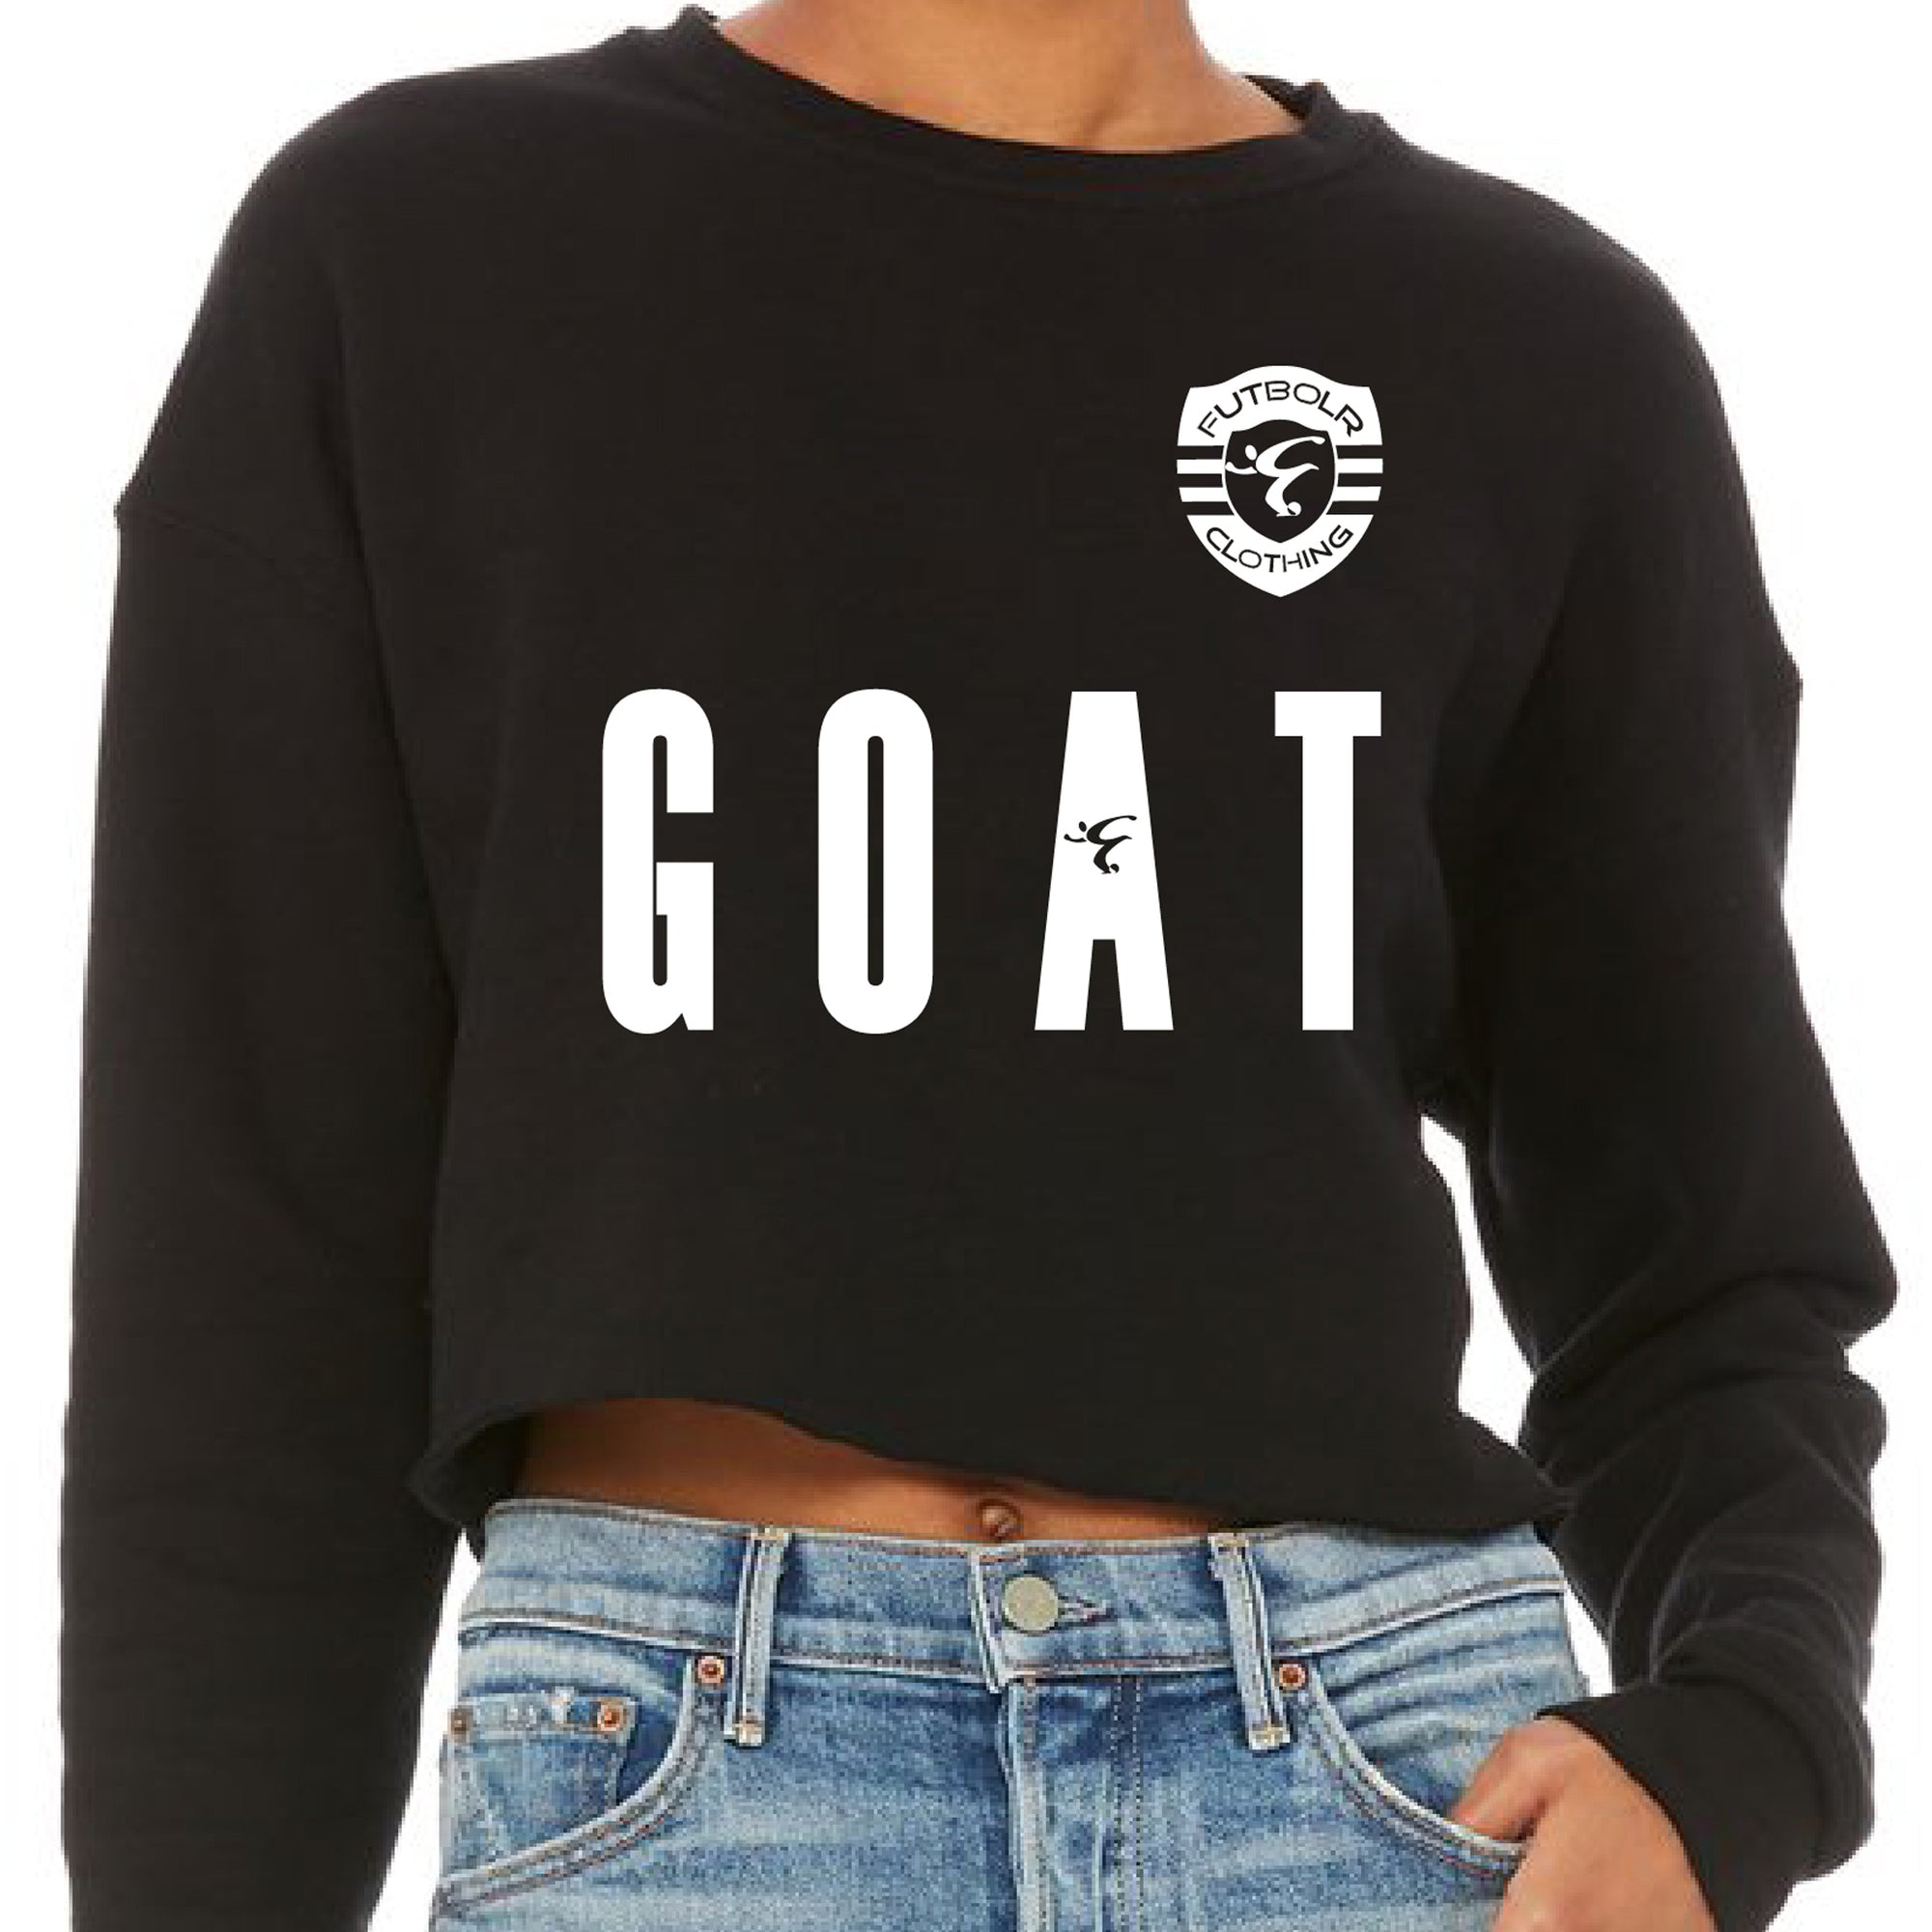 Futbolr Goat Women's Cropped Crew Fleece